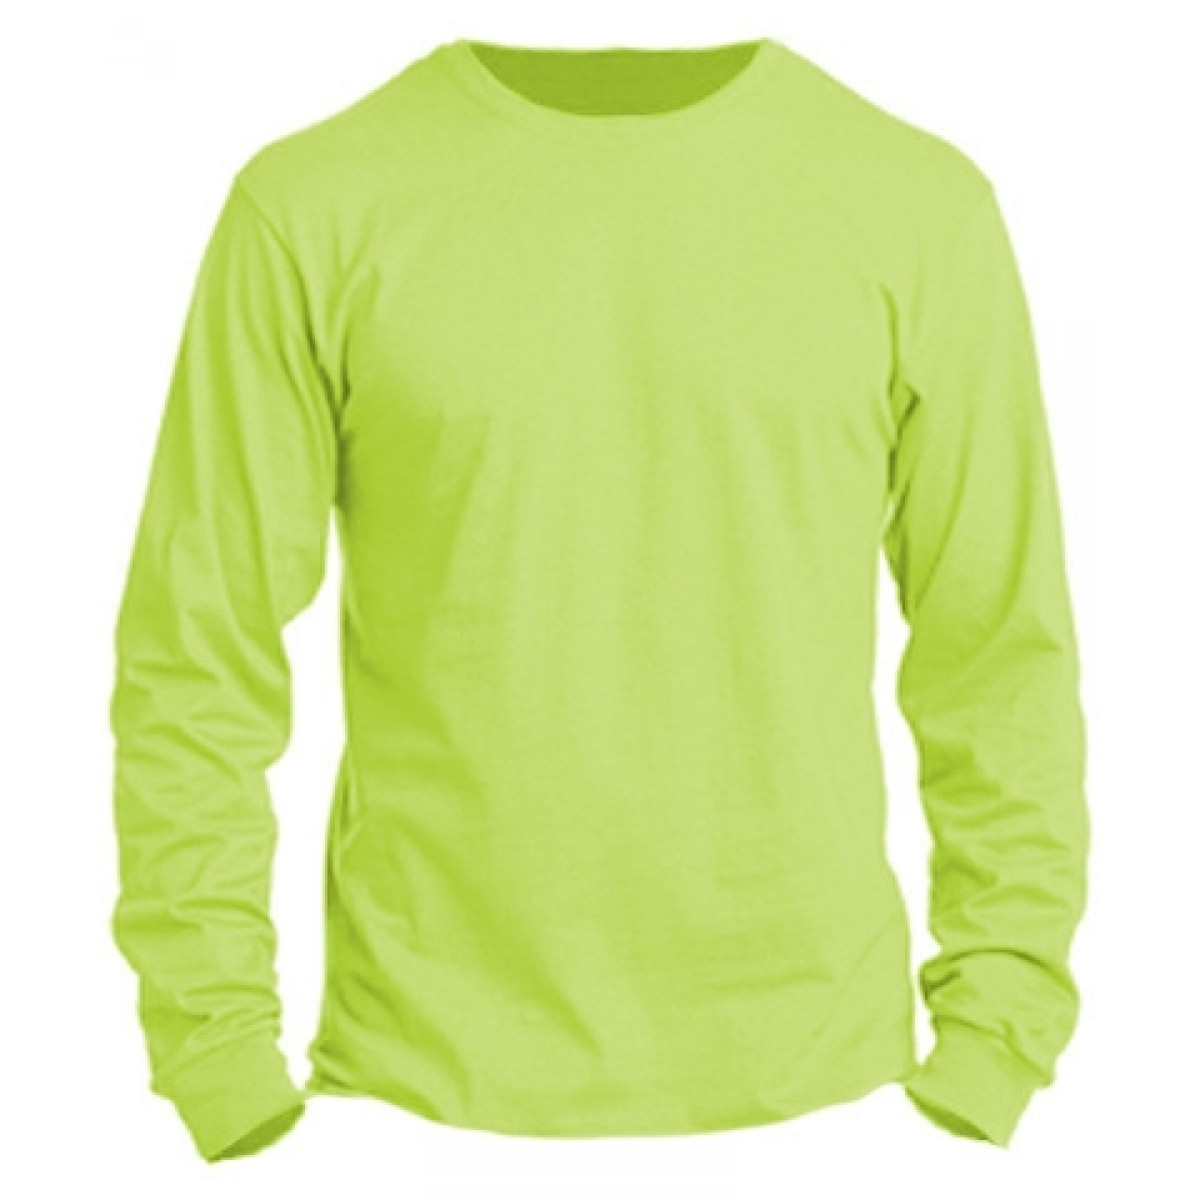 Basic Long Sleeve Crew Neck -Neon Green-YS